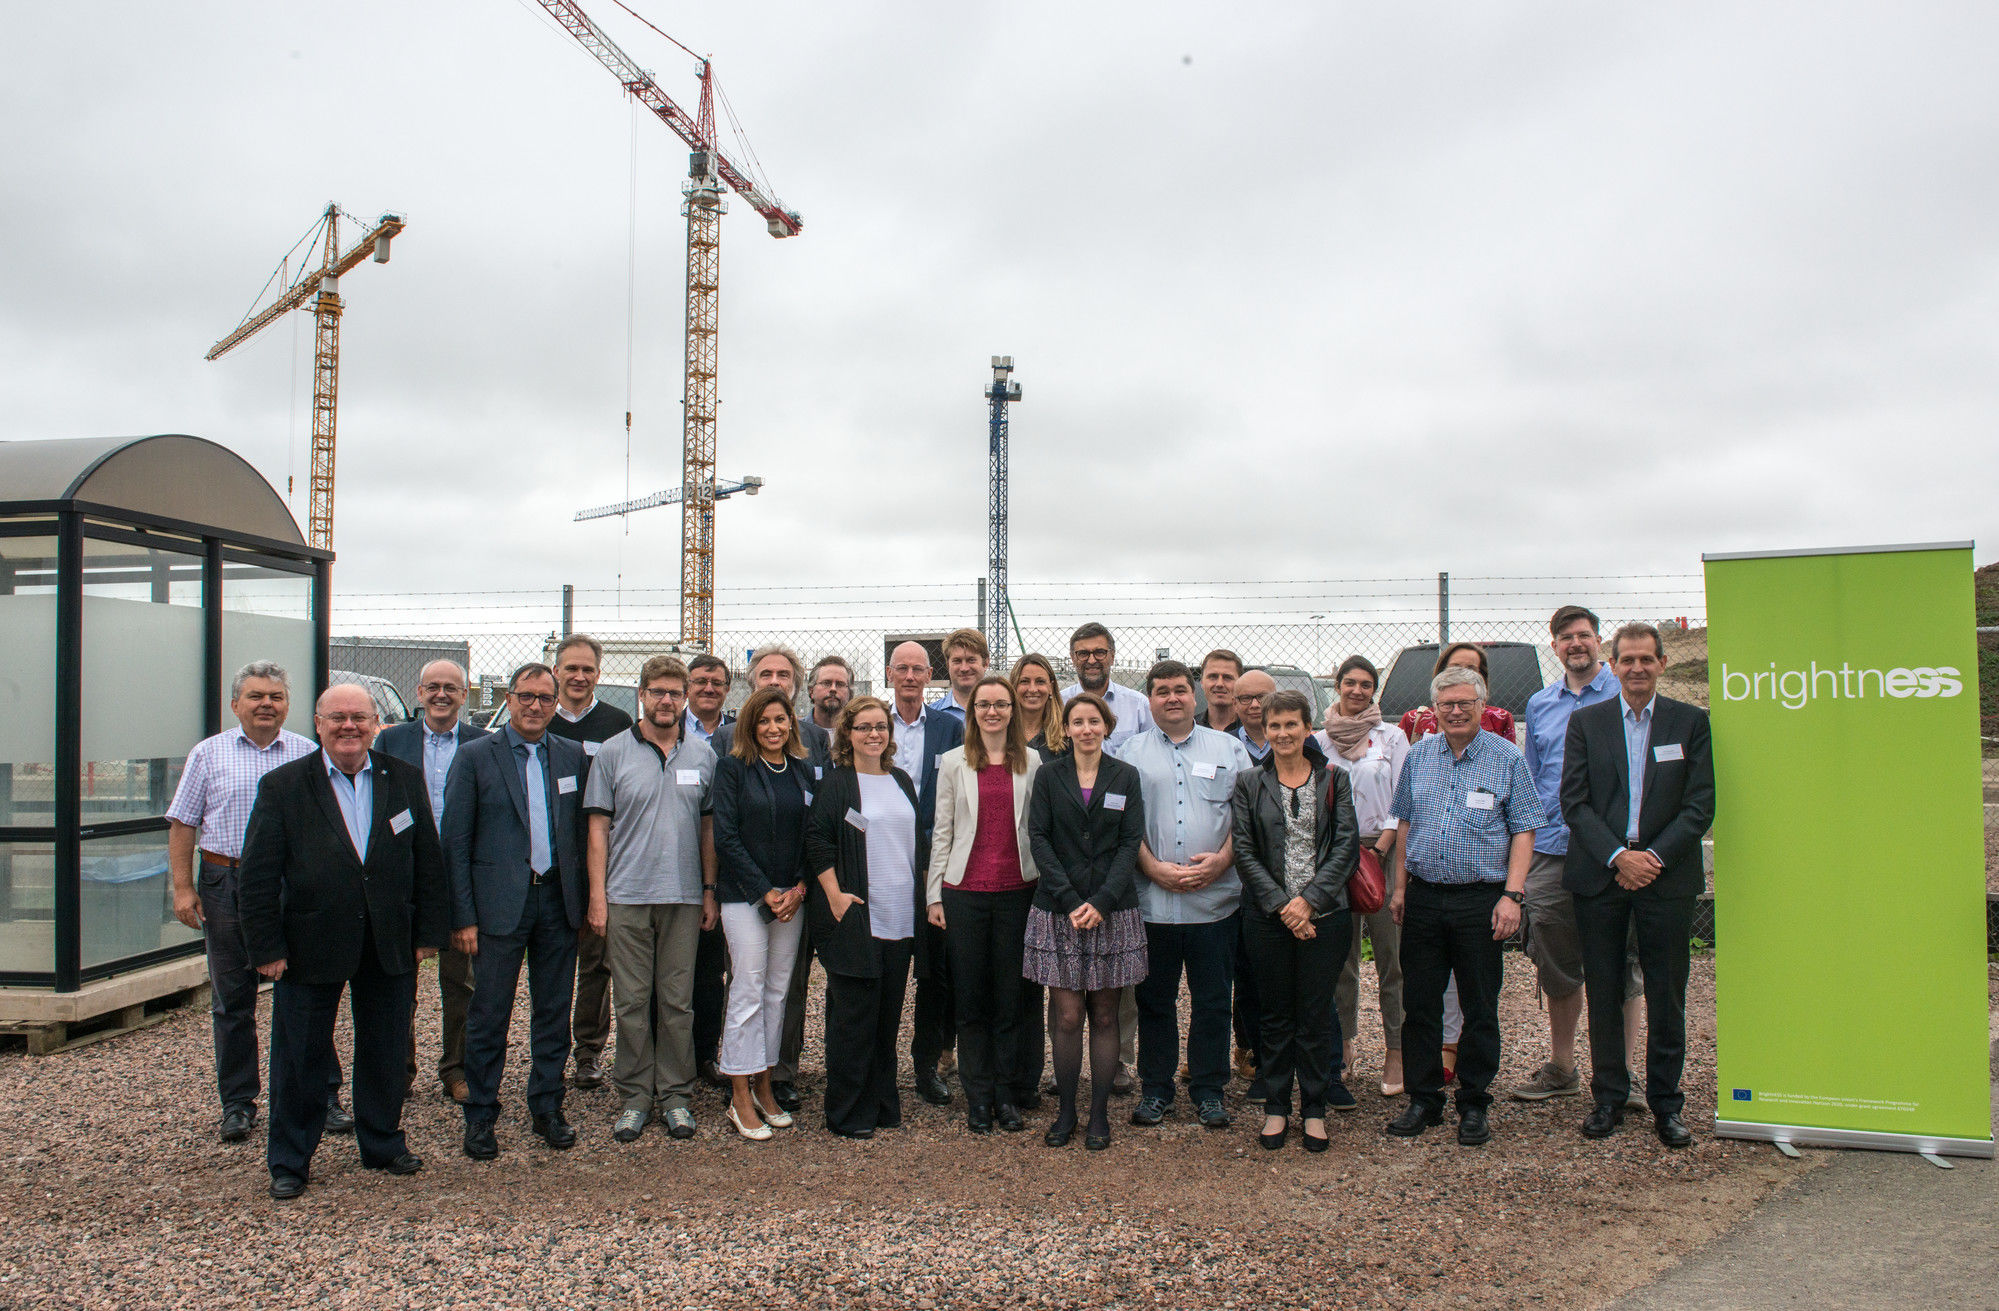 2017 BrightnESS General Assembly at the ESS construction site